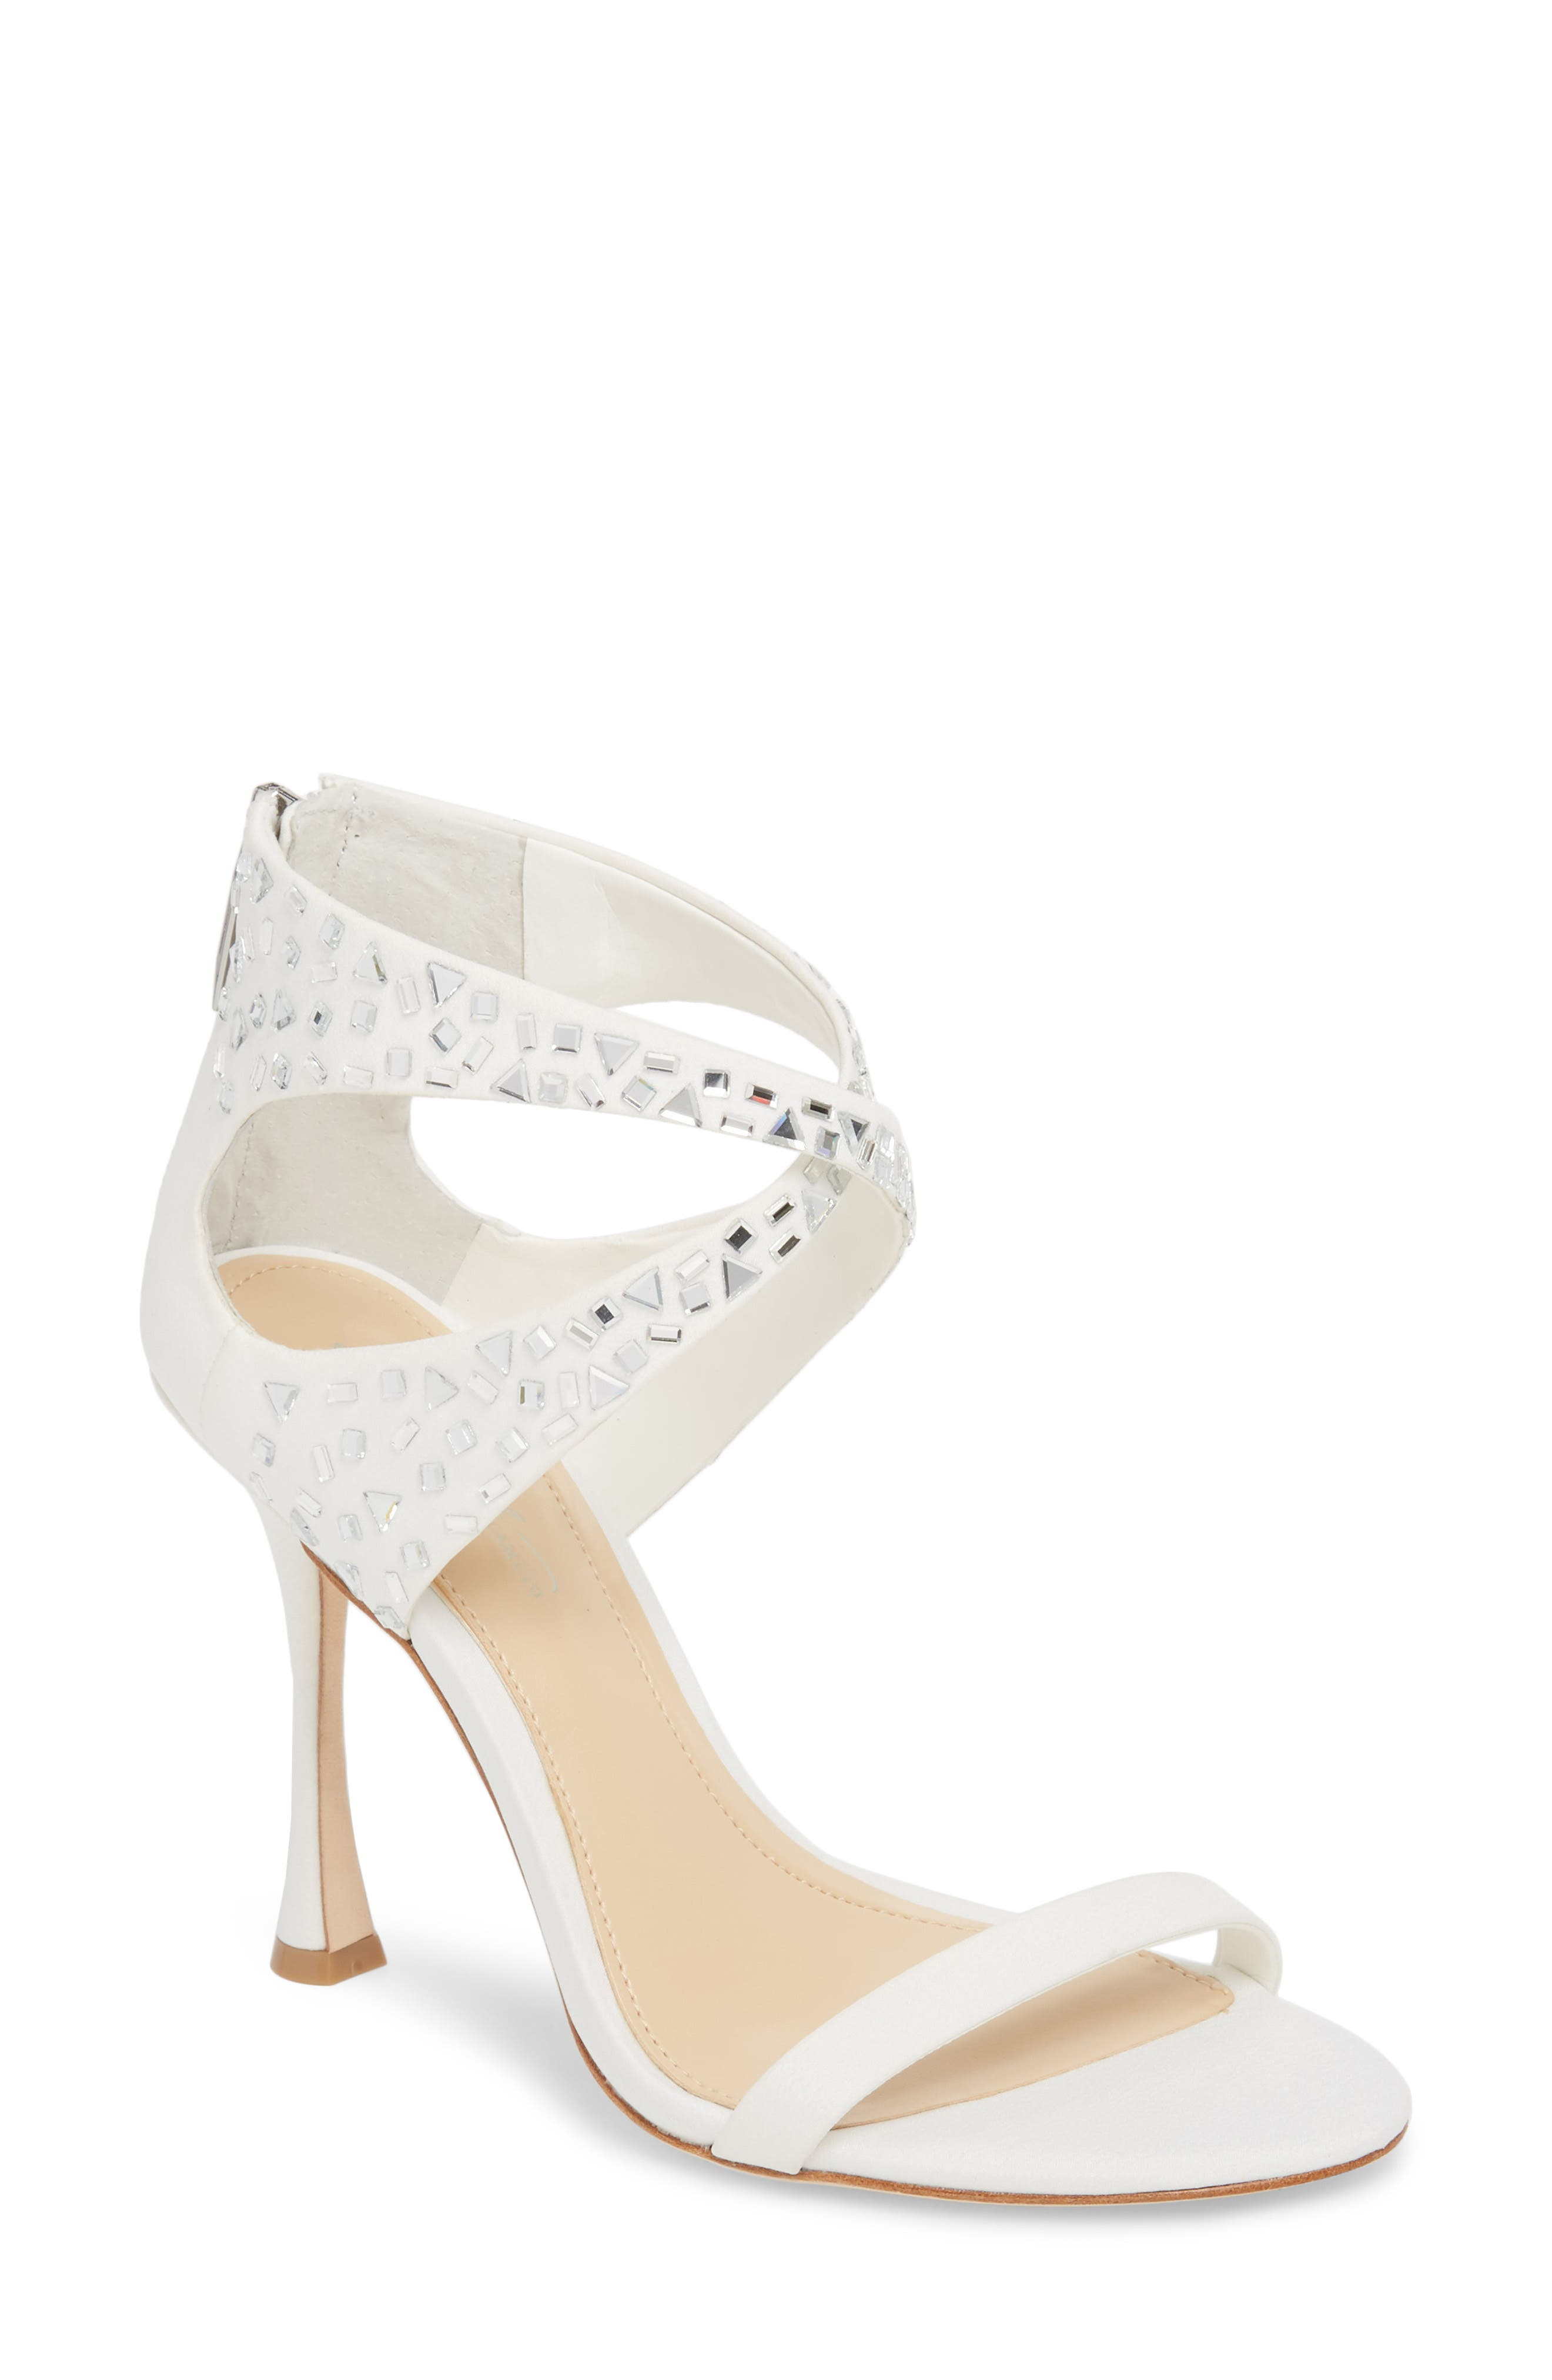 Imagine By Vince Camuto Ramel Sandal, White